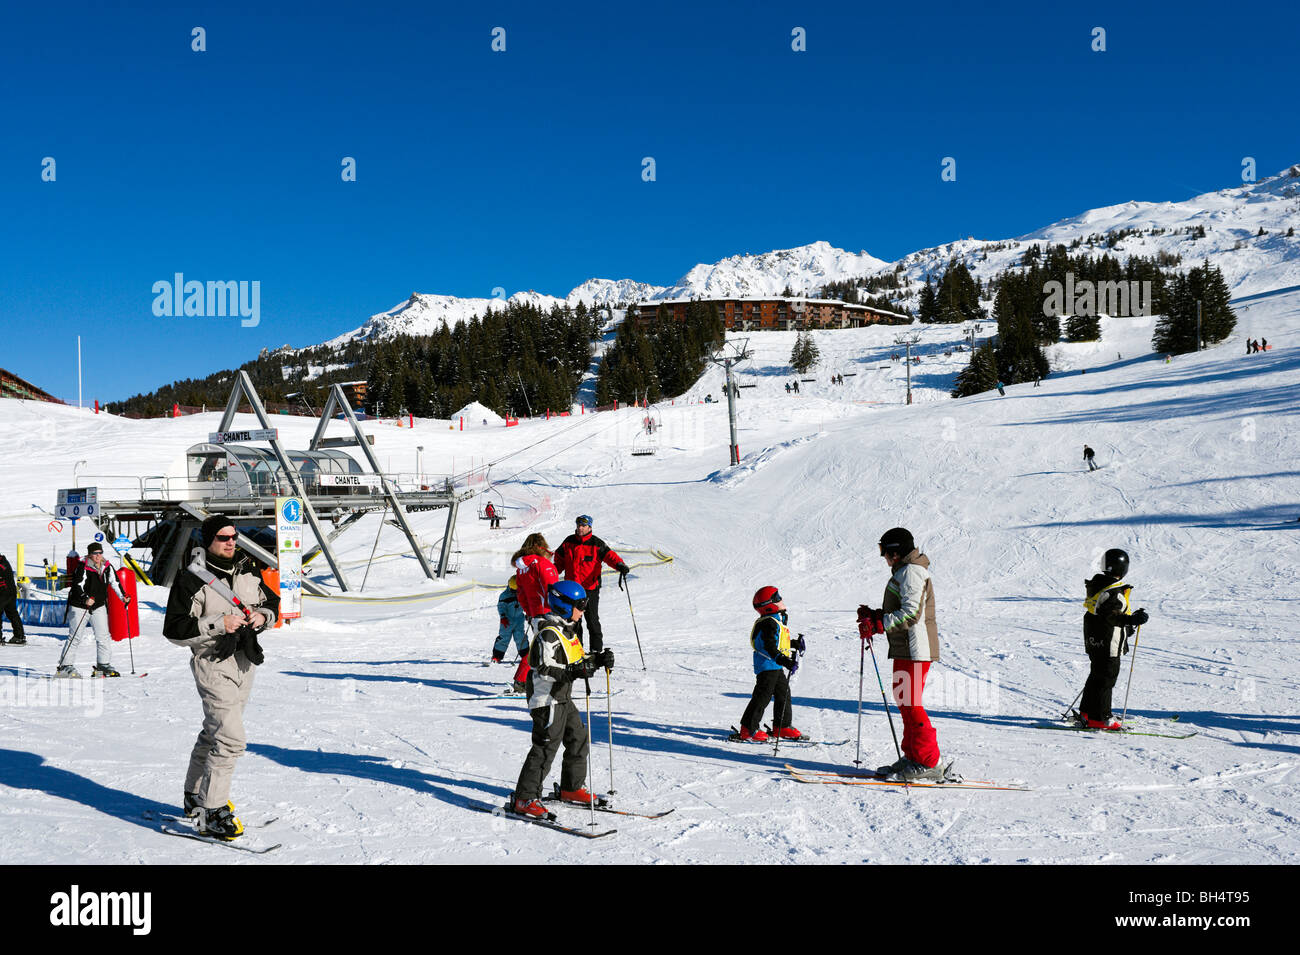 Bottom of the Chantel chair lift in the resort centre, Arc 1800, Les Arcs, Tarentaise, Savoie, France - Stock Image